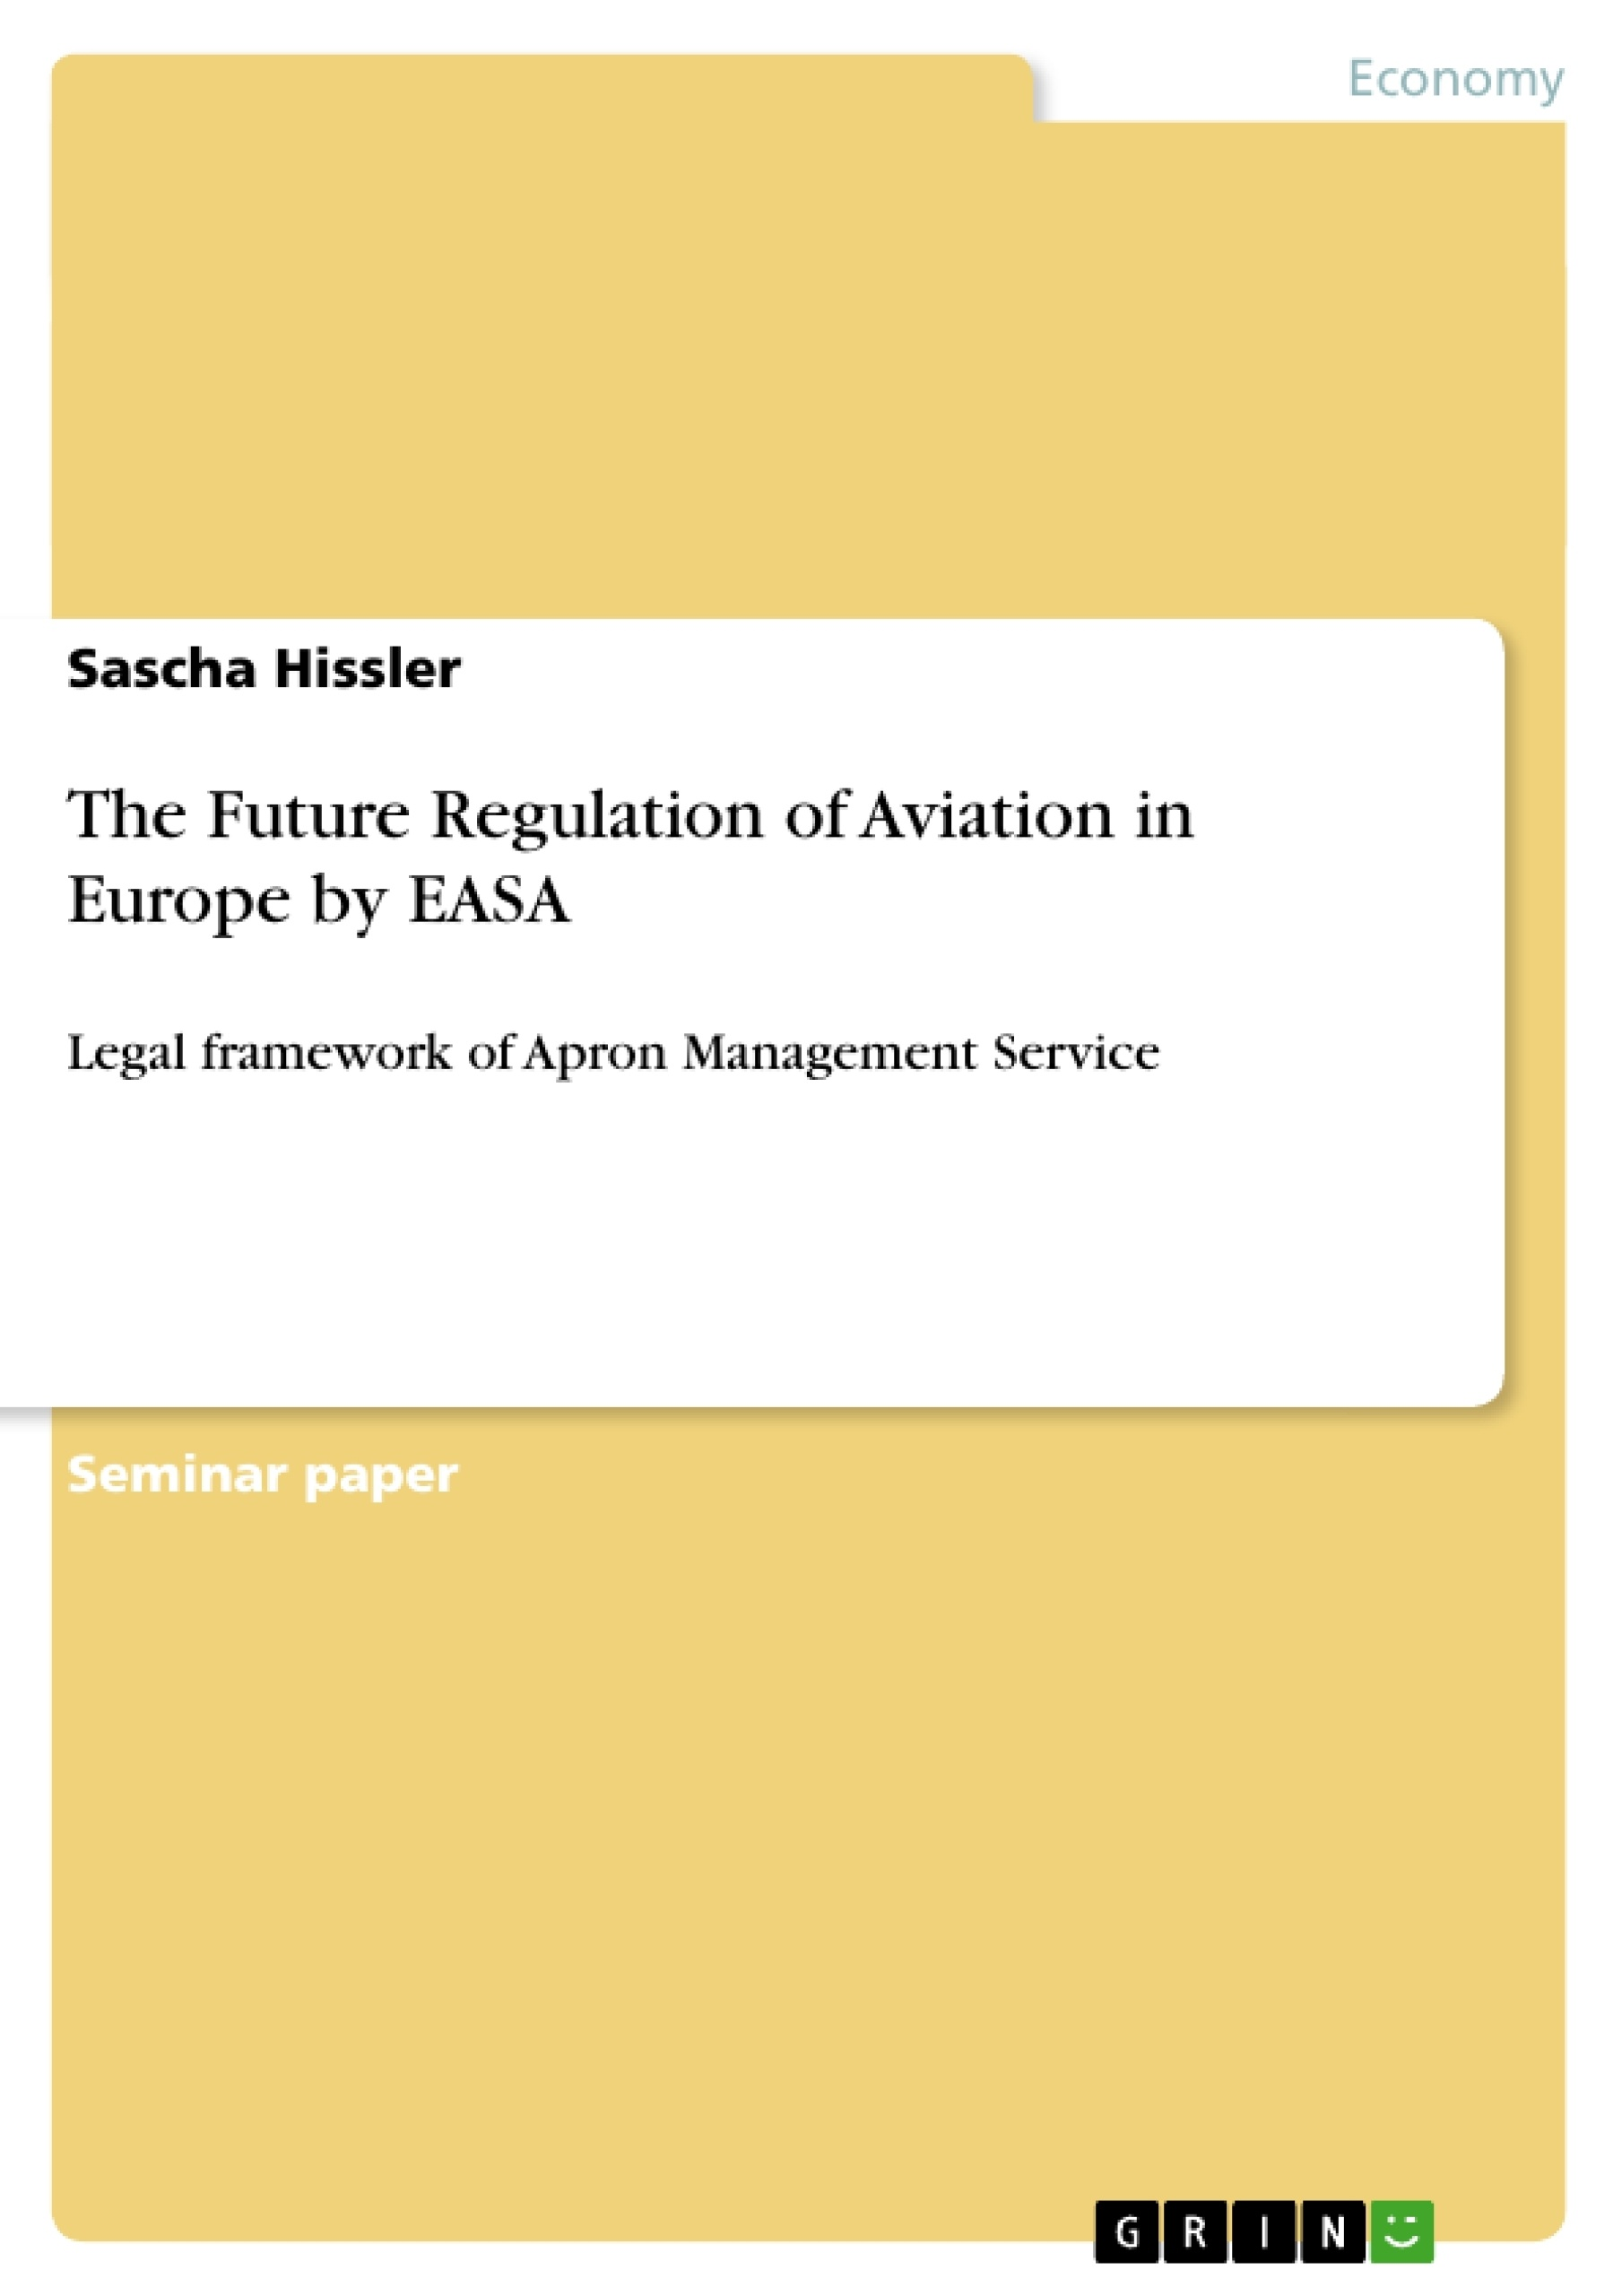 Title: The Future Regulation of Aviation in Europe by EASA